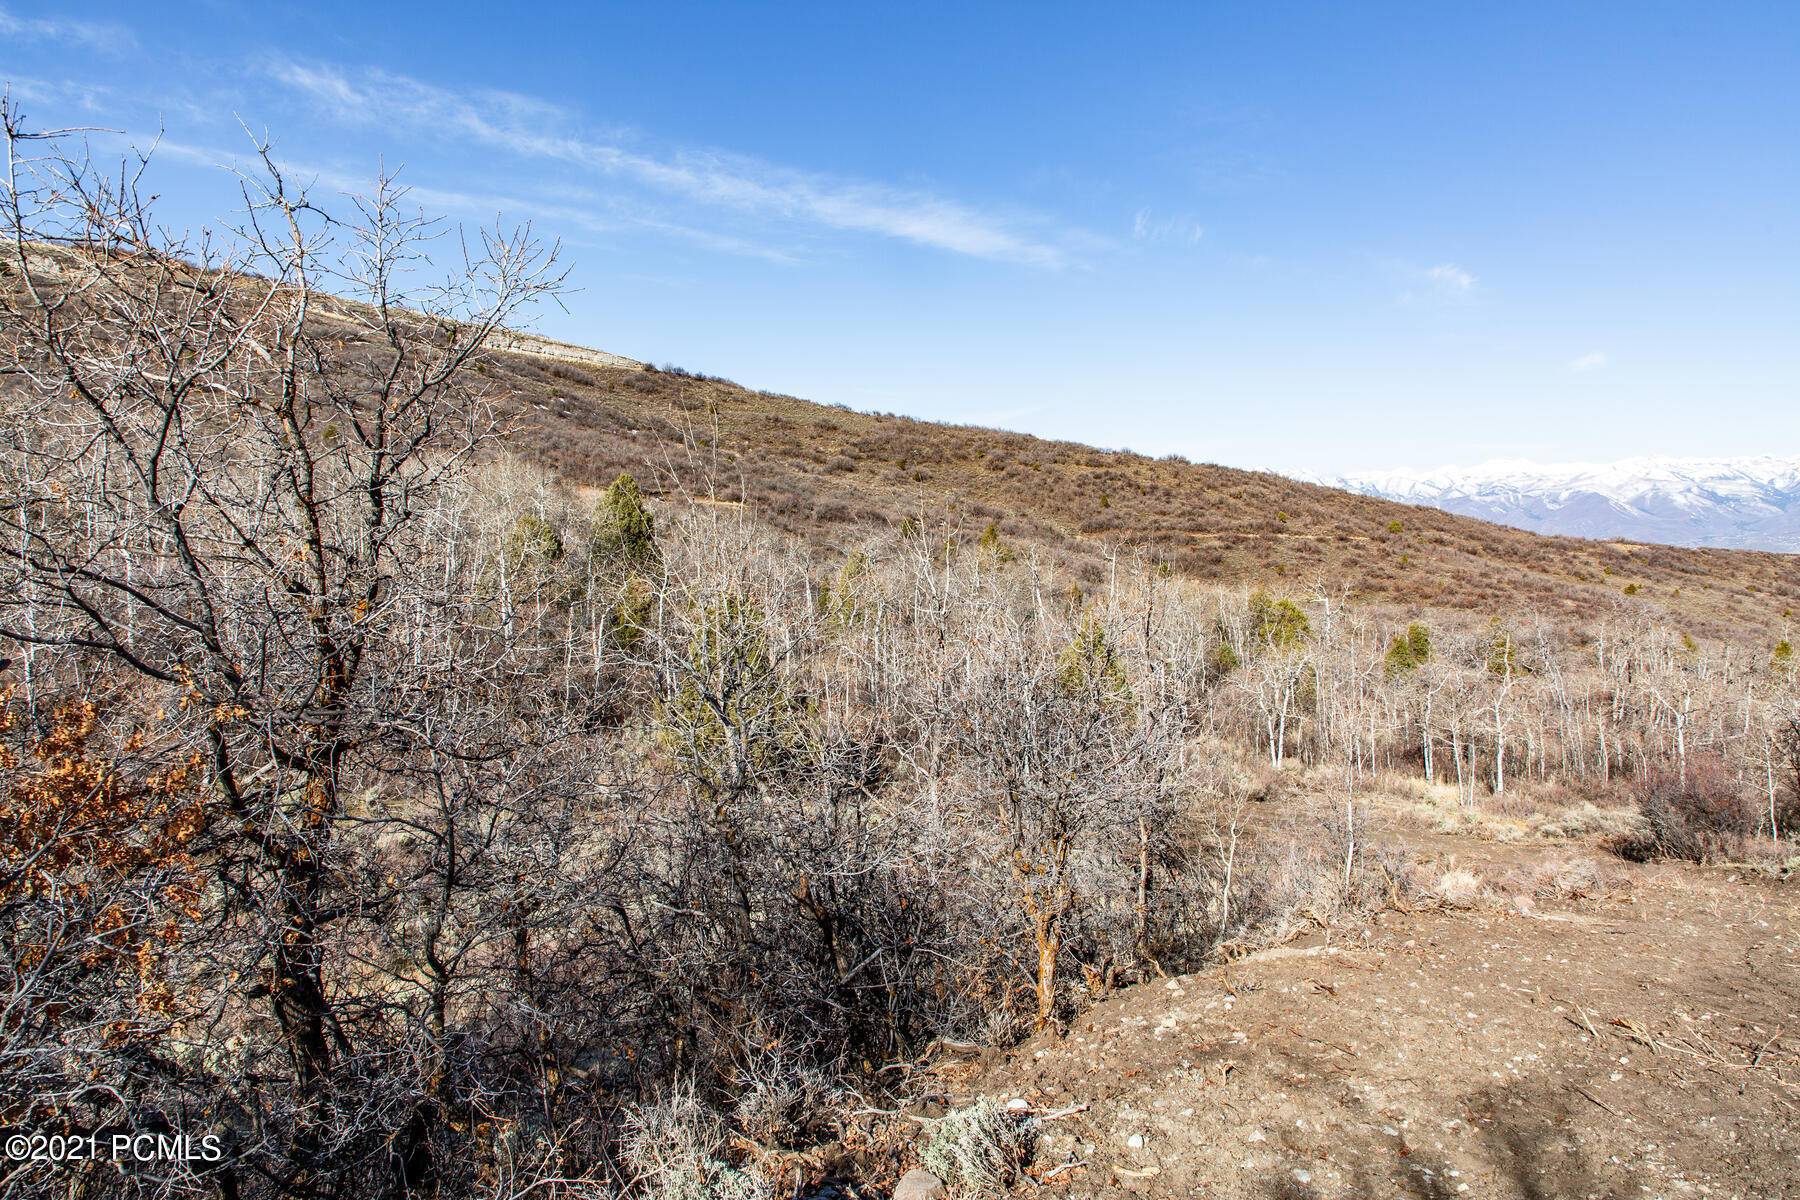 This 1.5 acre lot boasts amazing western views and is located in a secluded area of the Timber Lakes gated community. The private, peaceful setting is within minutes of Heber City, reservoirs, and the ski mountains. Build your dream primary or secondary retreat and migrate to enjoy the Utah mountain lifestyle. The adjacent 1.8 acre lot is also available. Plans by Upwall Design included.